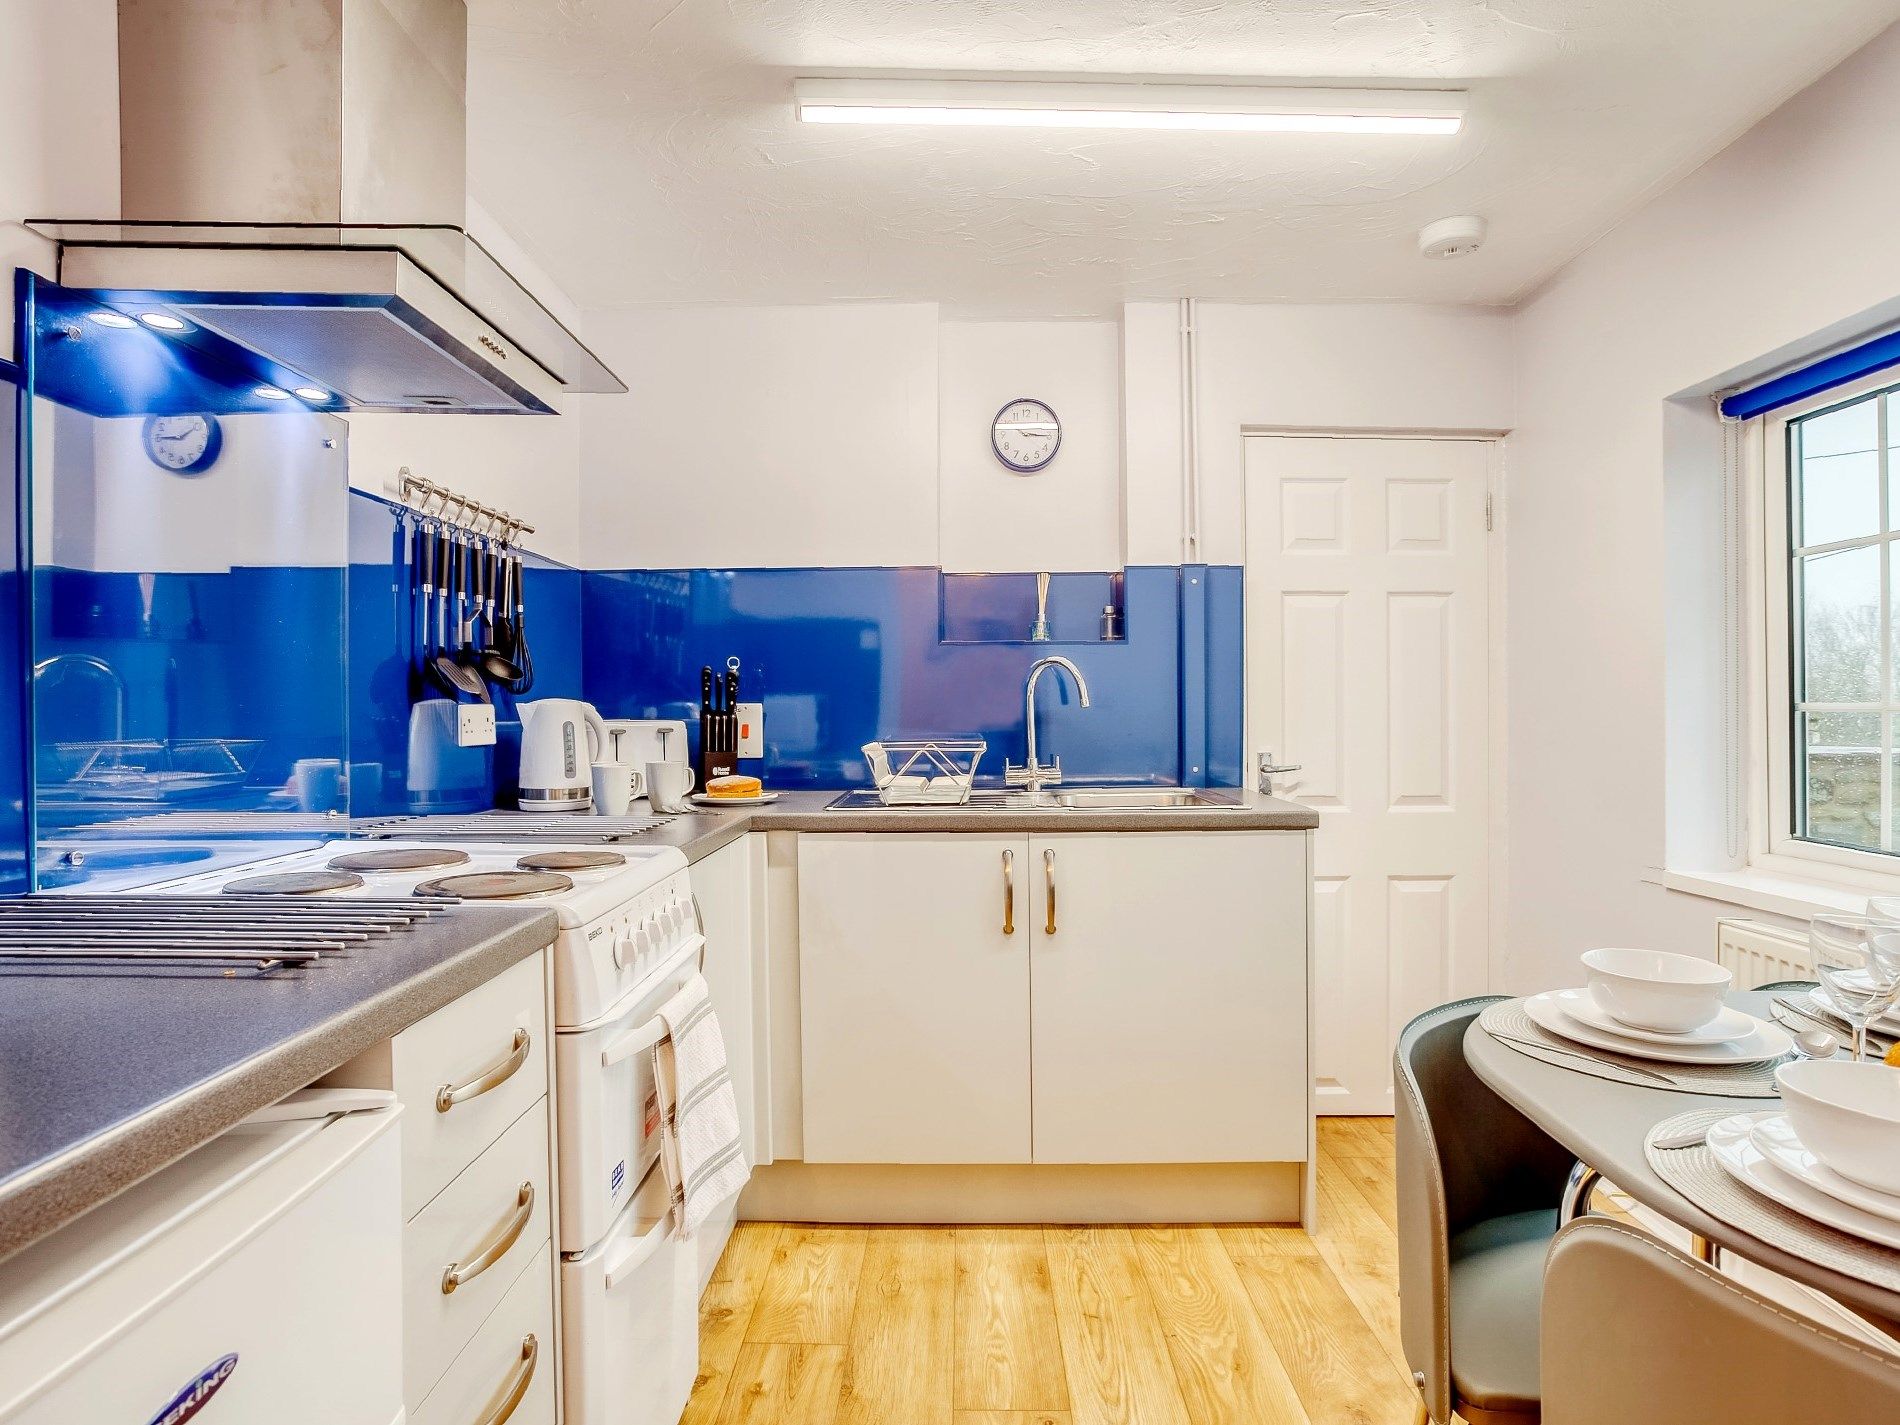 A well-equipped kitchen with a contemporary style